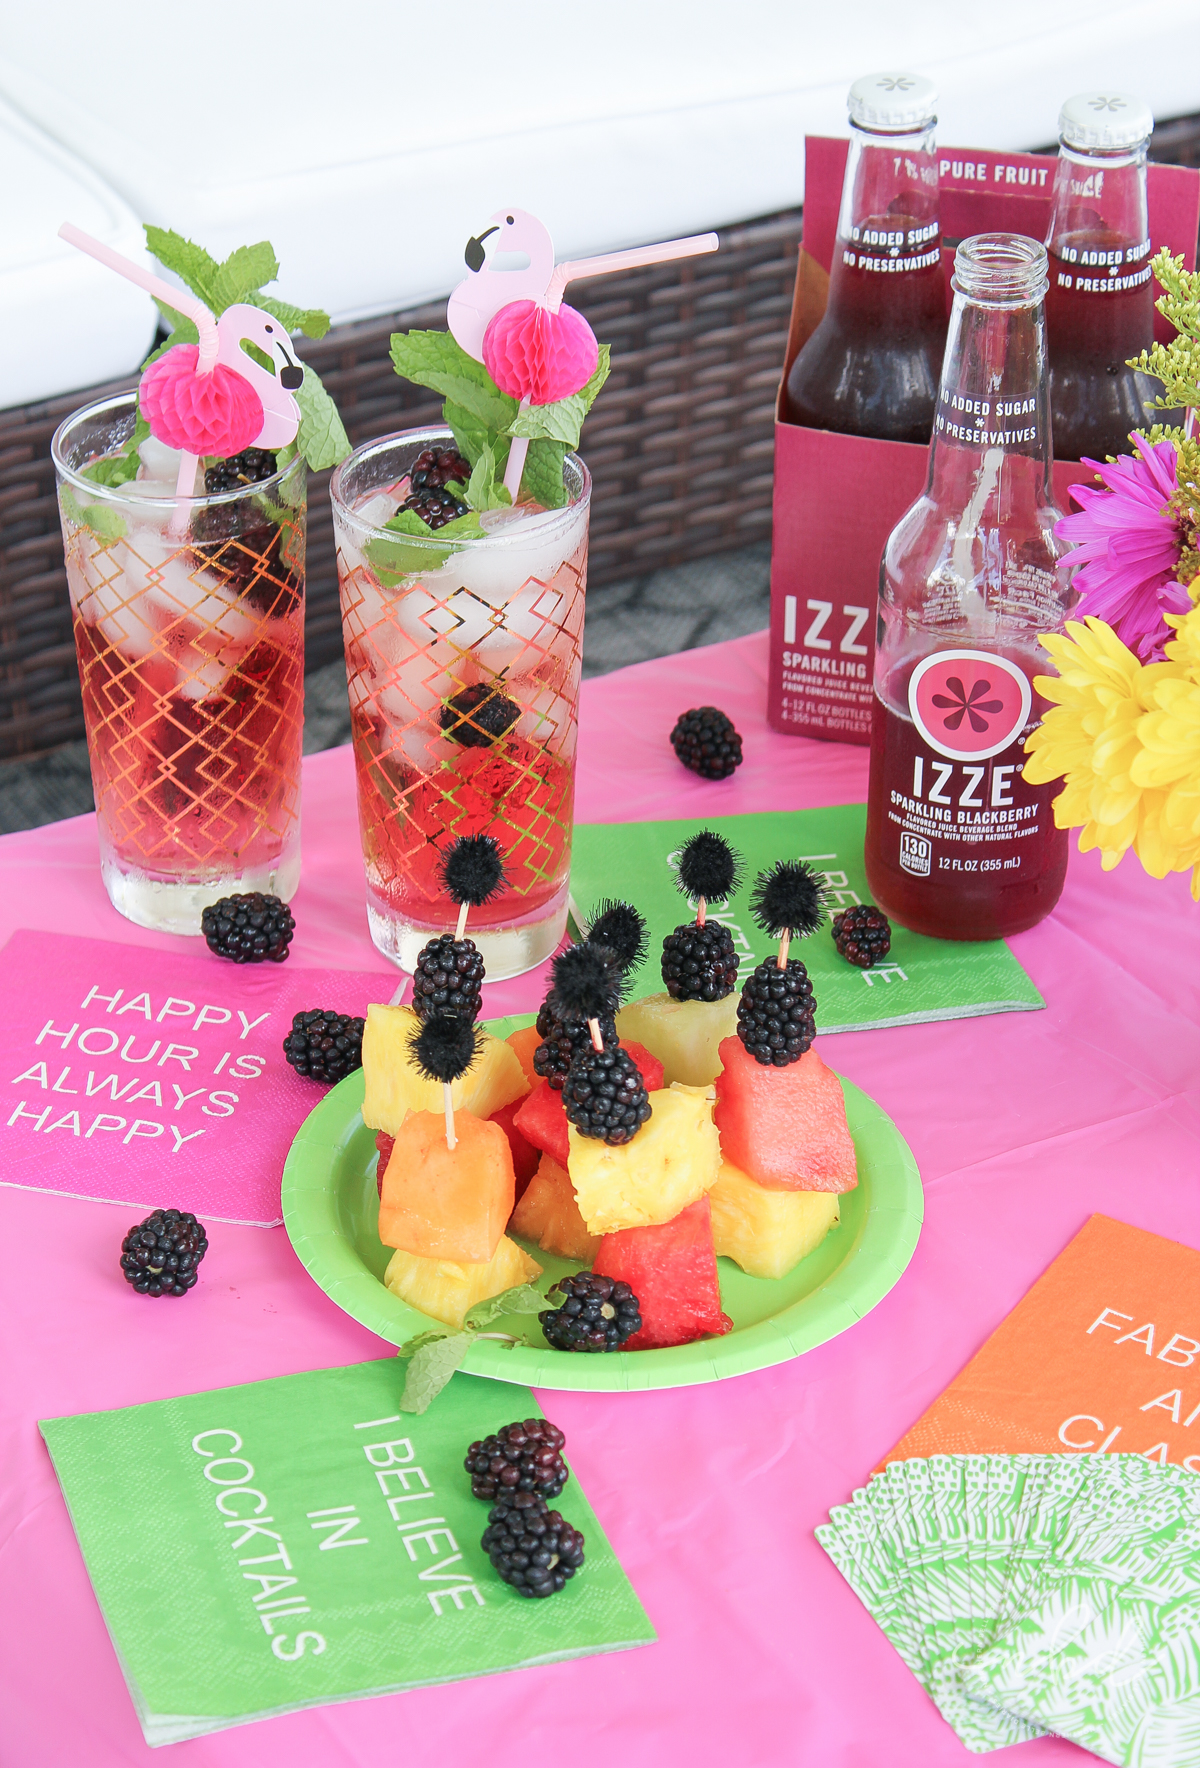 Sparkling Blackberry Mojito recipe, easy and delicious. IZZE sparkling juices are perfect for creating refreshing + fun cocktails and mock-tails! Sparkling Blackberry is also delicious on its own. #ad